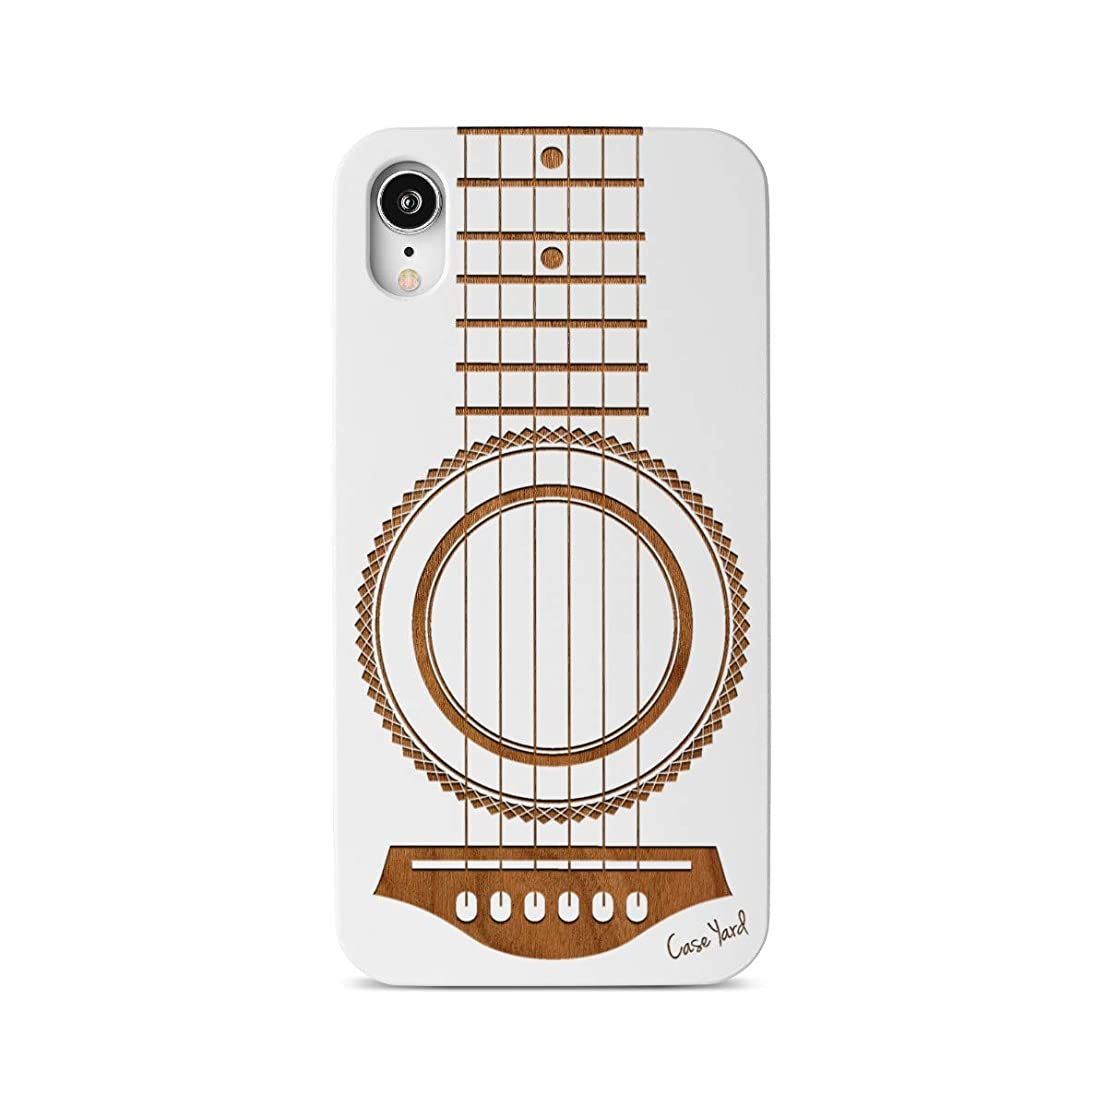 iPhone XR Case, CaseYard Slim-Fit, Hybrid, Lightweight, Fashionable iPhoneXR Wood Case, Made in California (iPhone XR) (White) Guitar